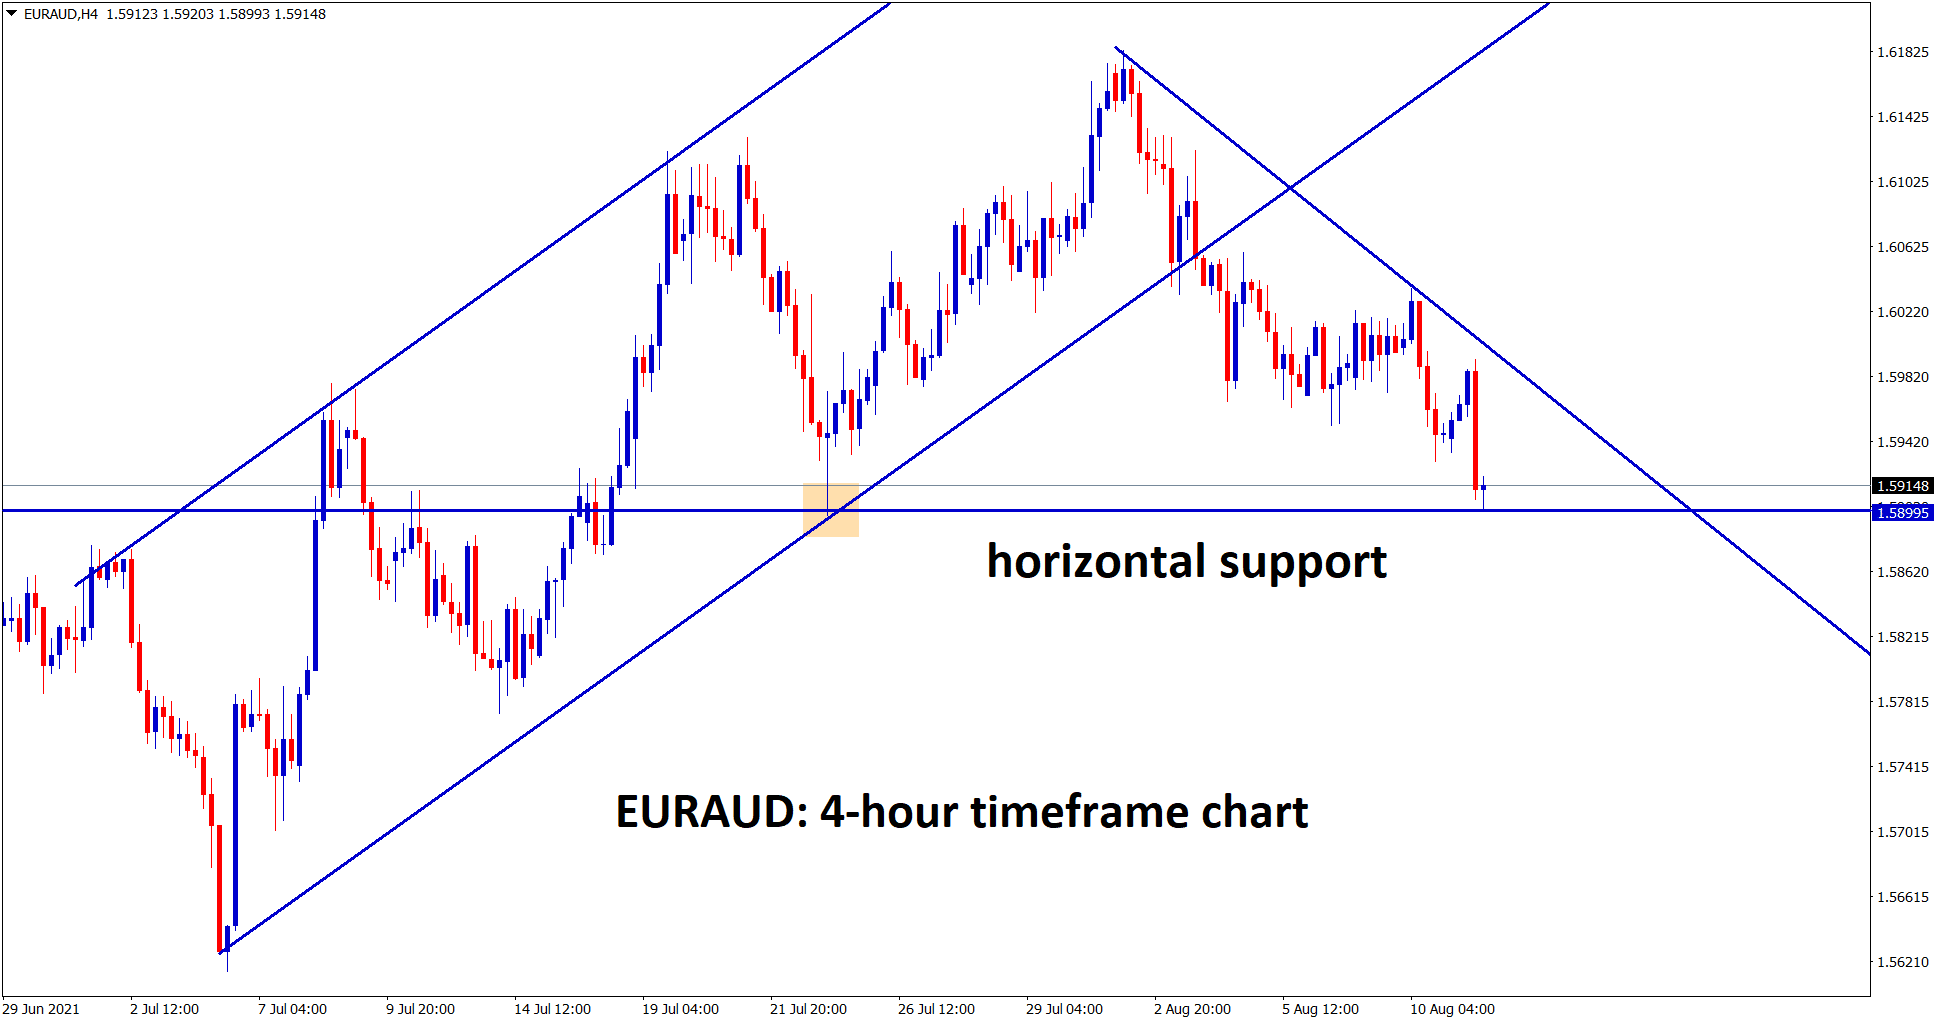 EURAUD hits the horizontal support area after breaking the ascending channel